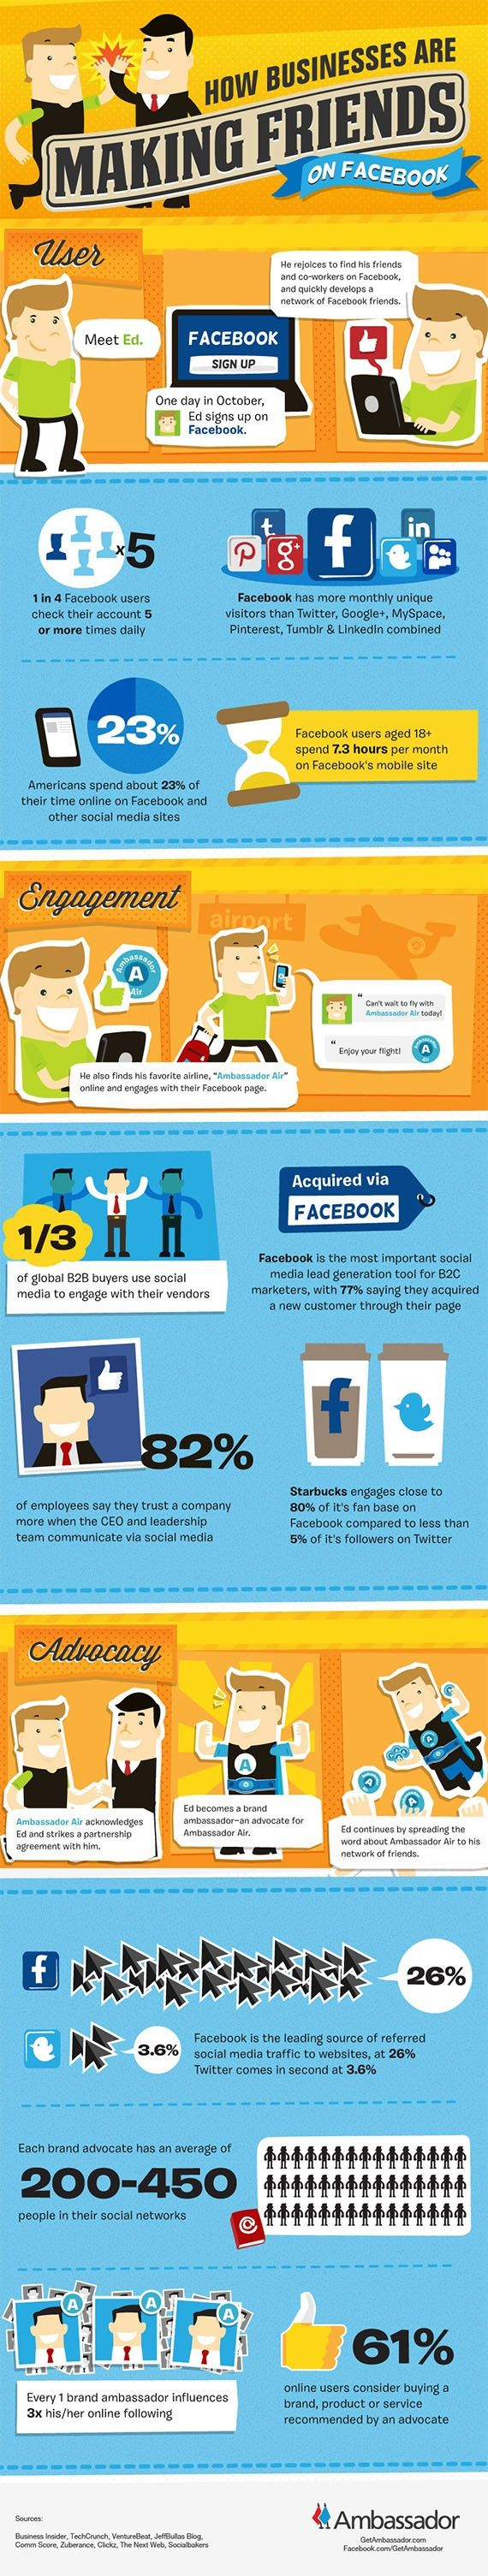 How Businesses Make Friends on Facebook